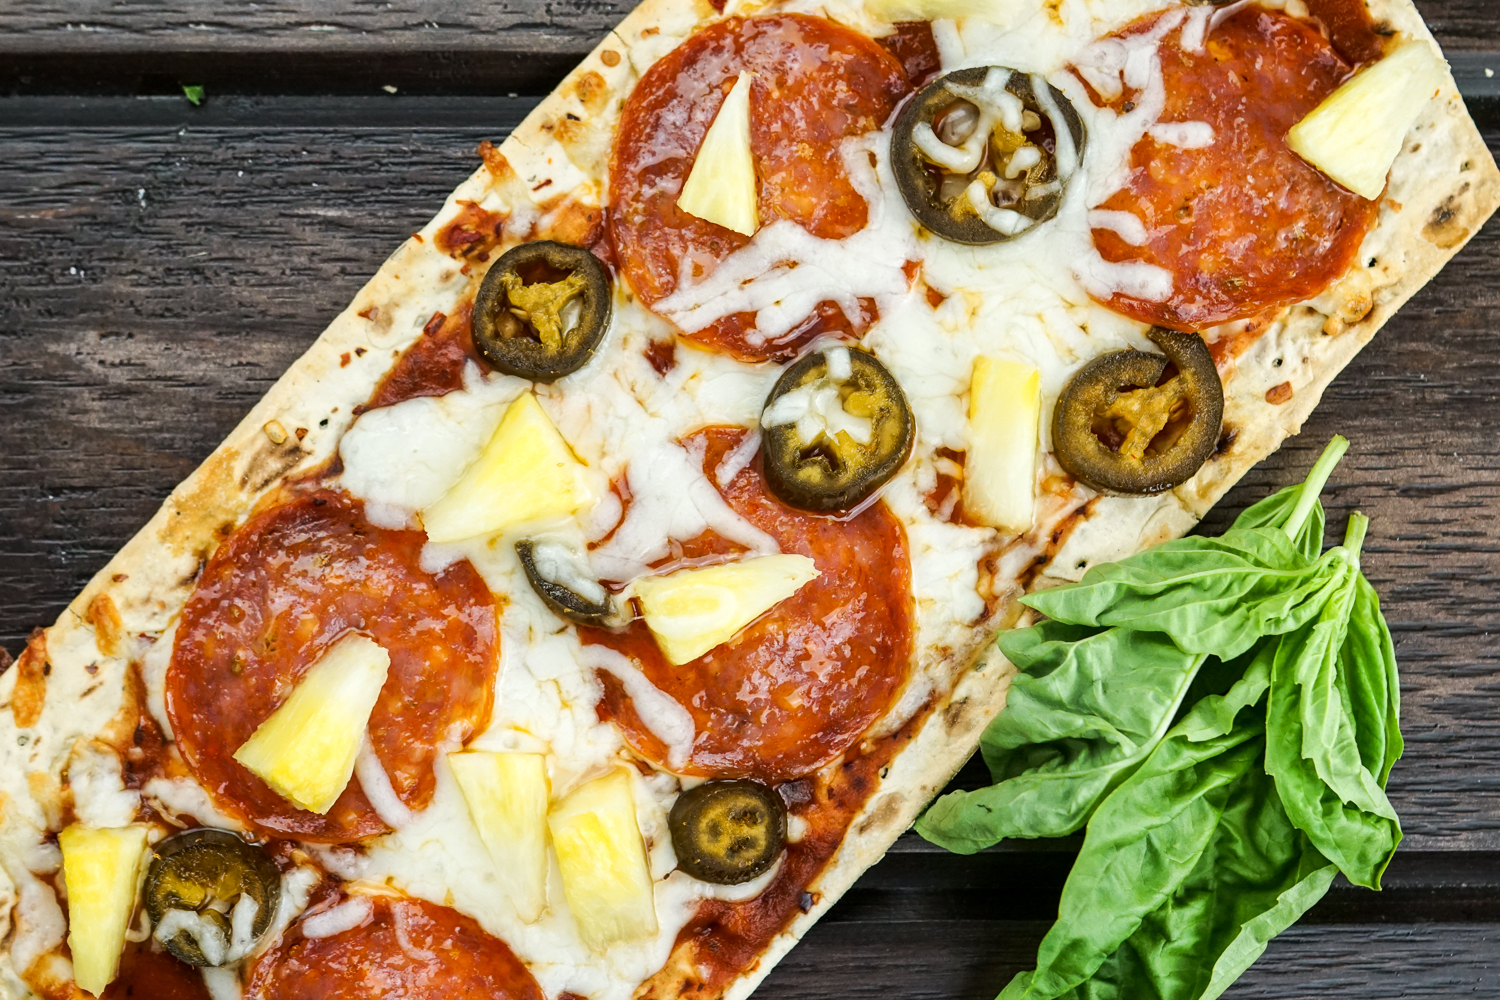 Pepperoni and Pineapple Pizza with Jalapenos for a healthy appetizer.